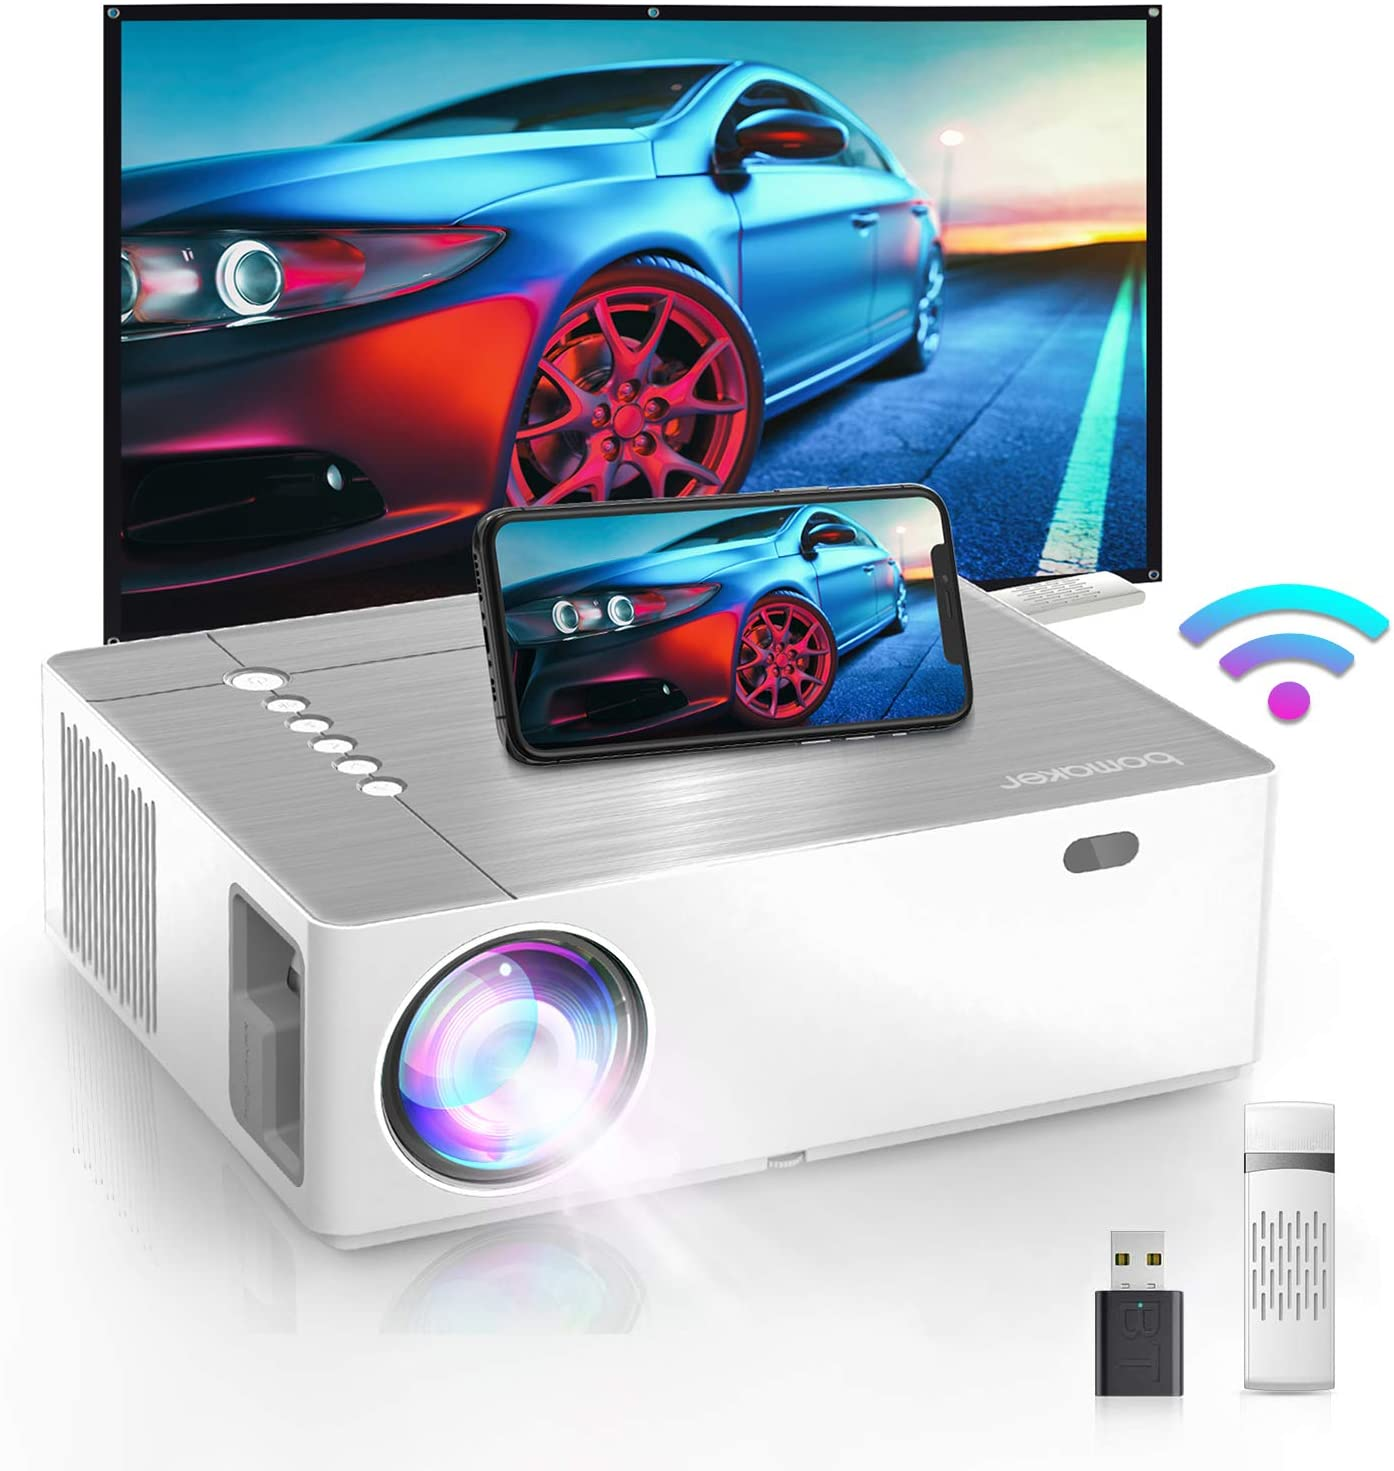 50% Zoom Out Bomaker 6500 Lux Native 1080P Projektor iOS HDMI… 300 ...